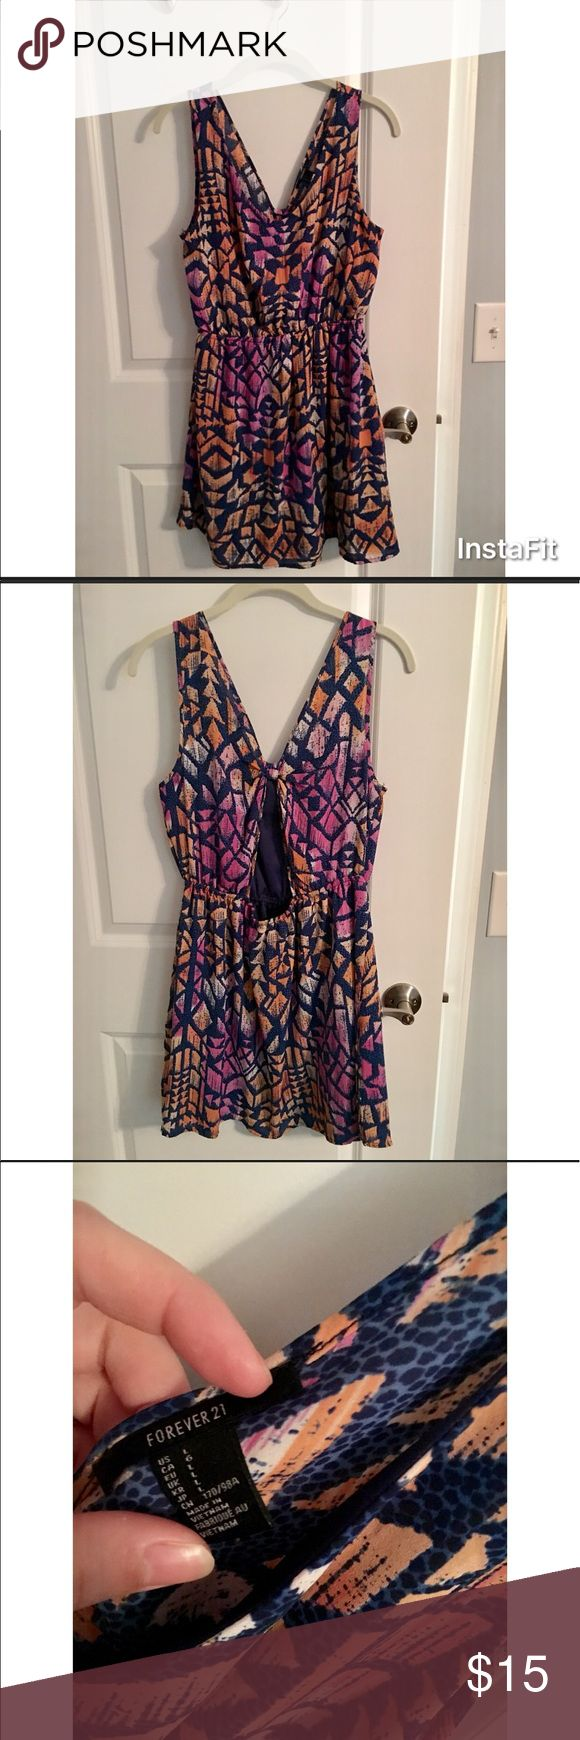 Forever 21 Summer Dress with open back Gently used Forever